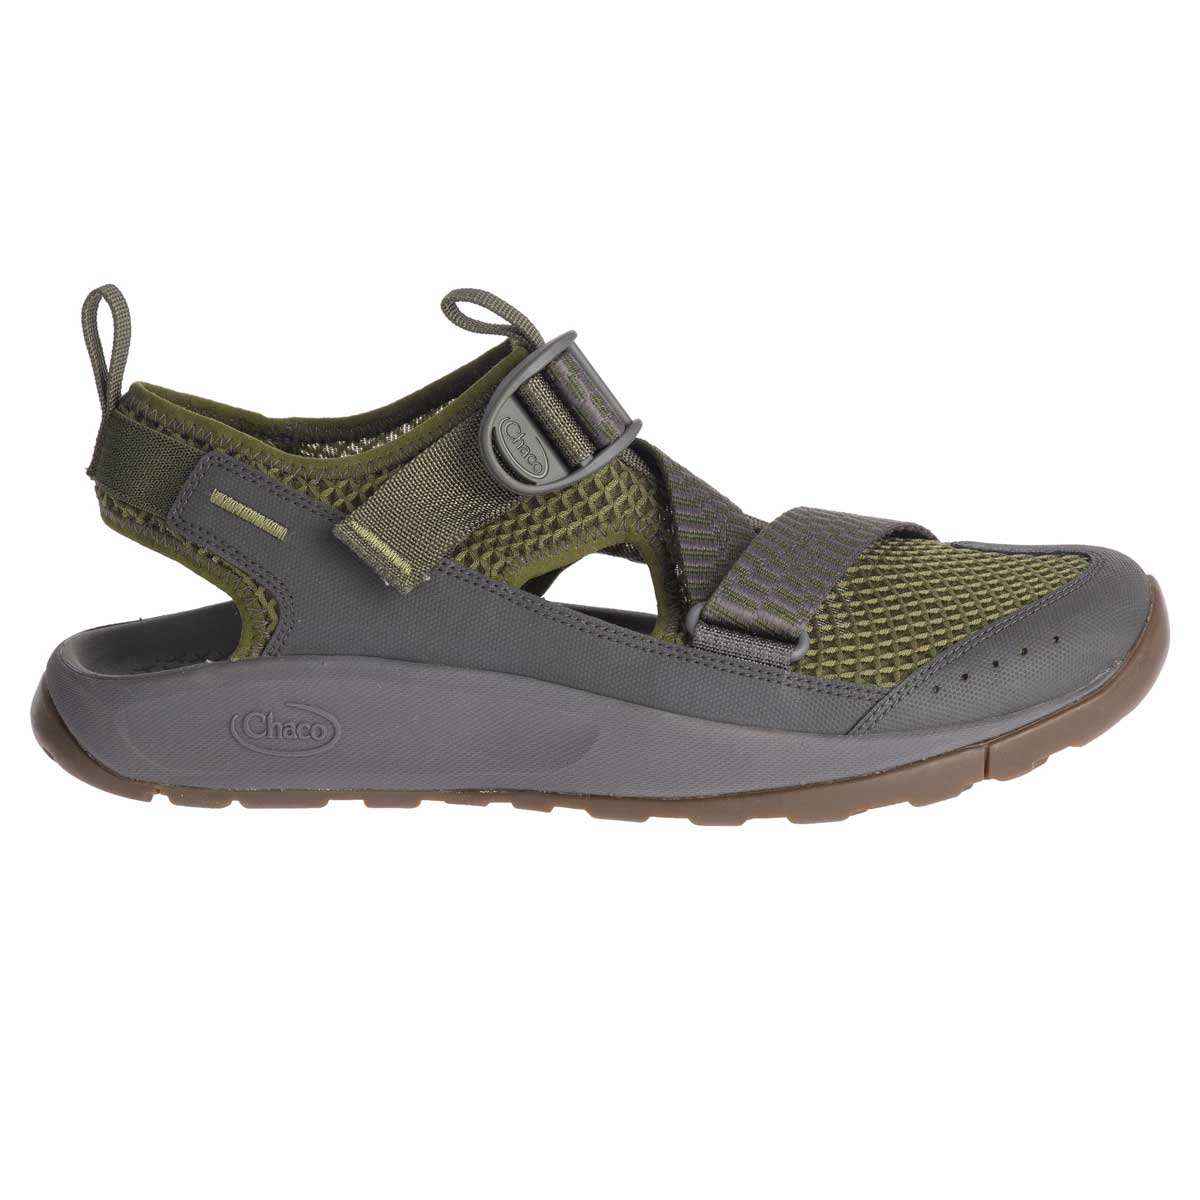 Chaco Odyssey Men's Sandal in Hunter Green